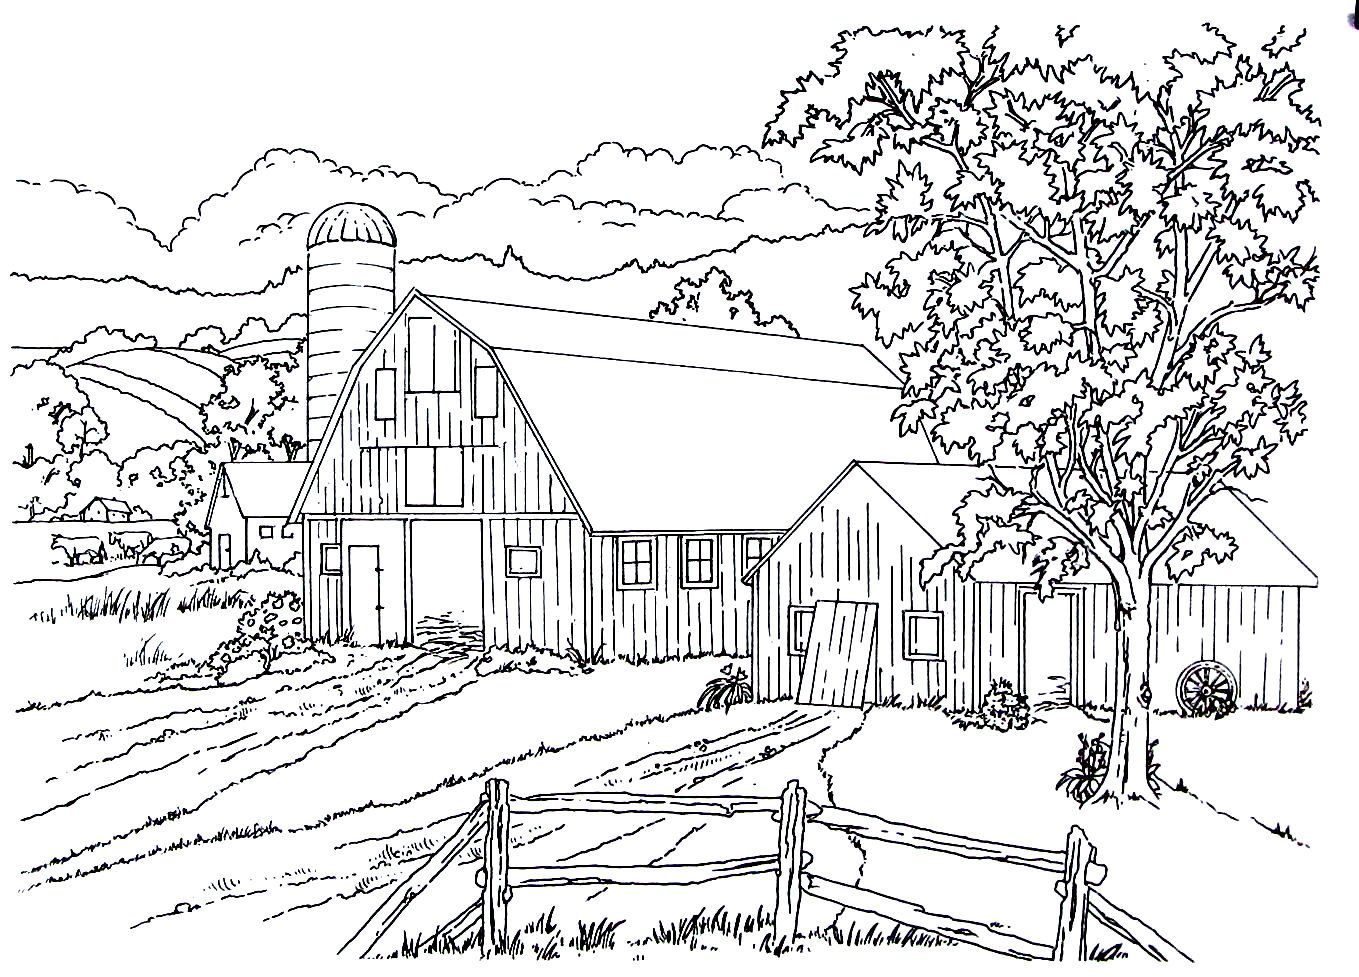 Barn And Silo In The Country